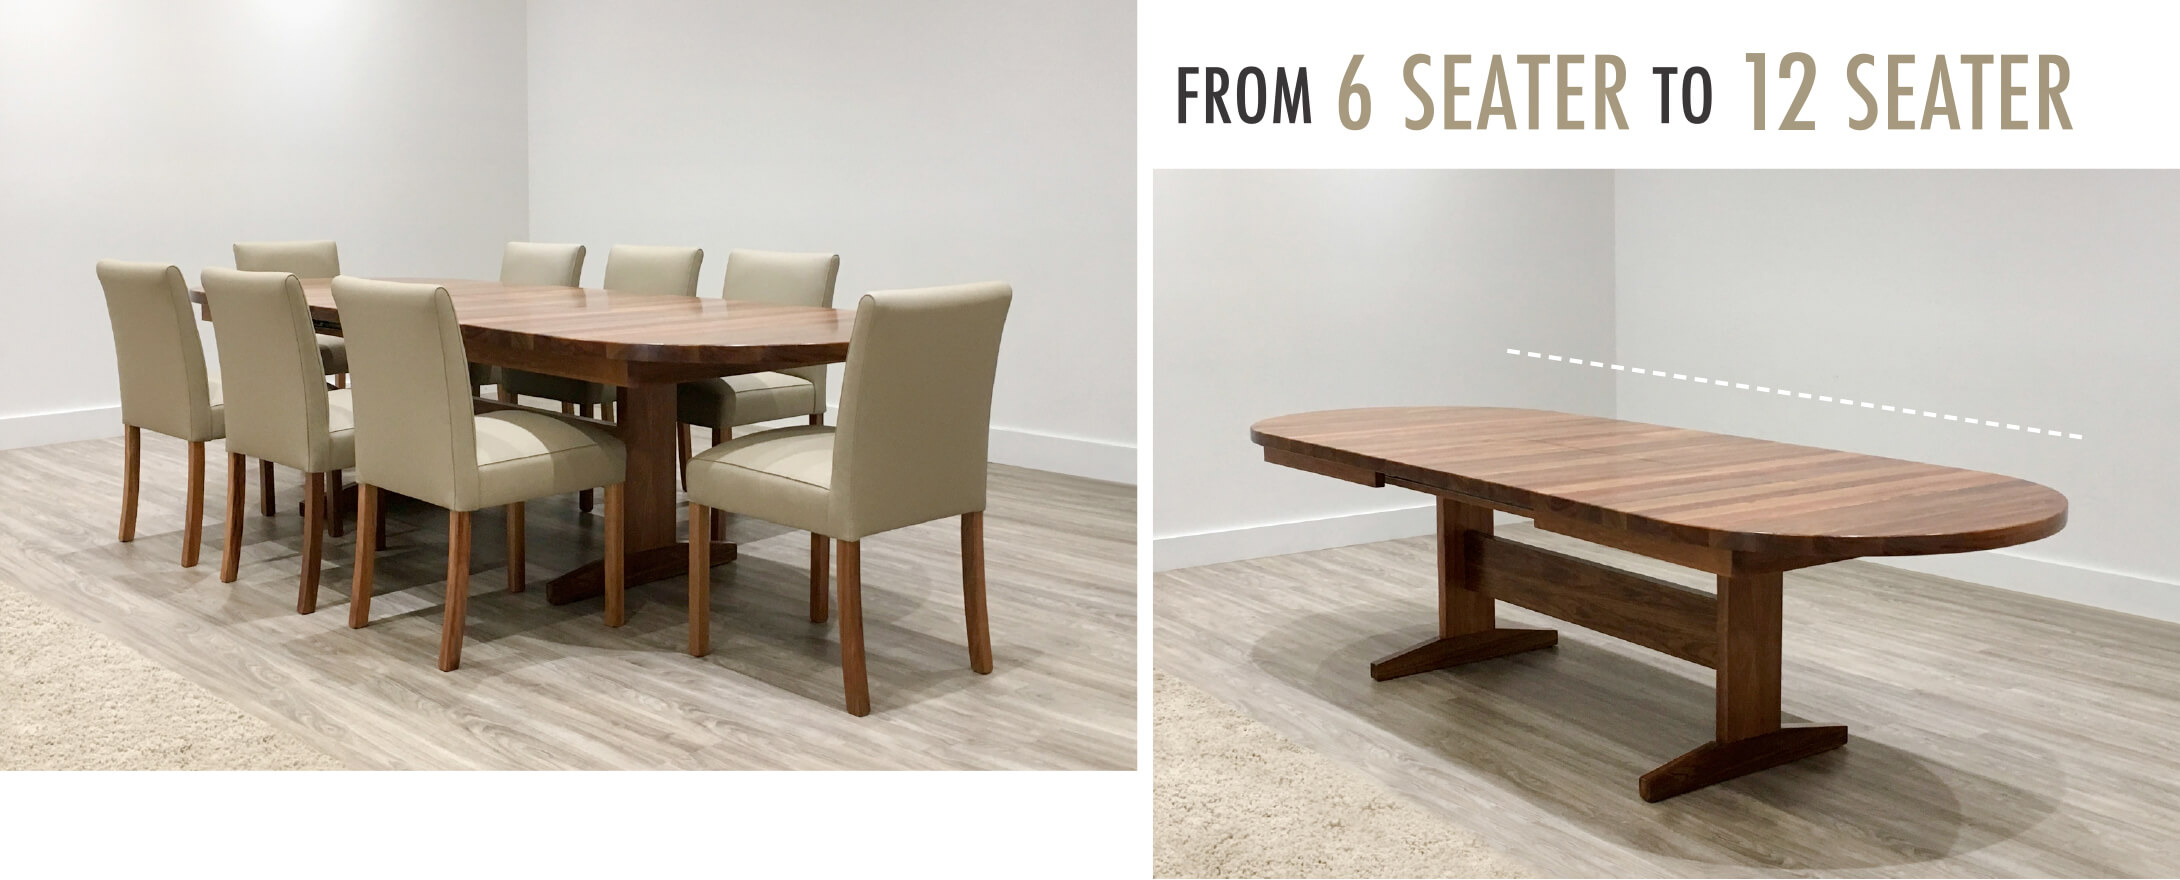 6 seater to 12 seater extendable dining table